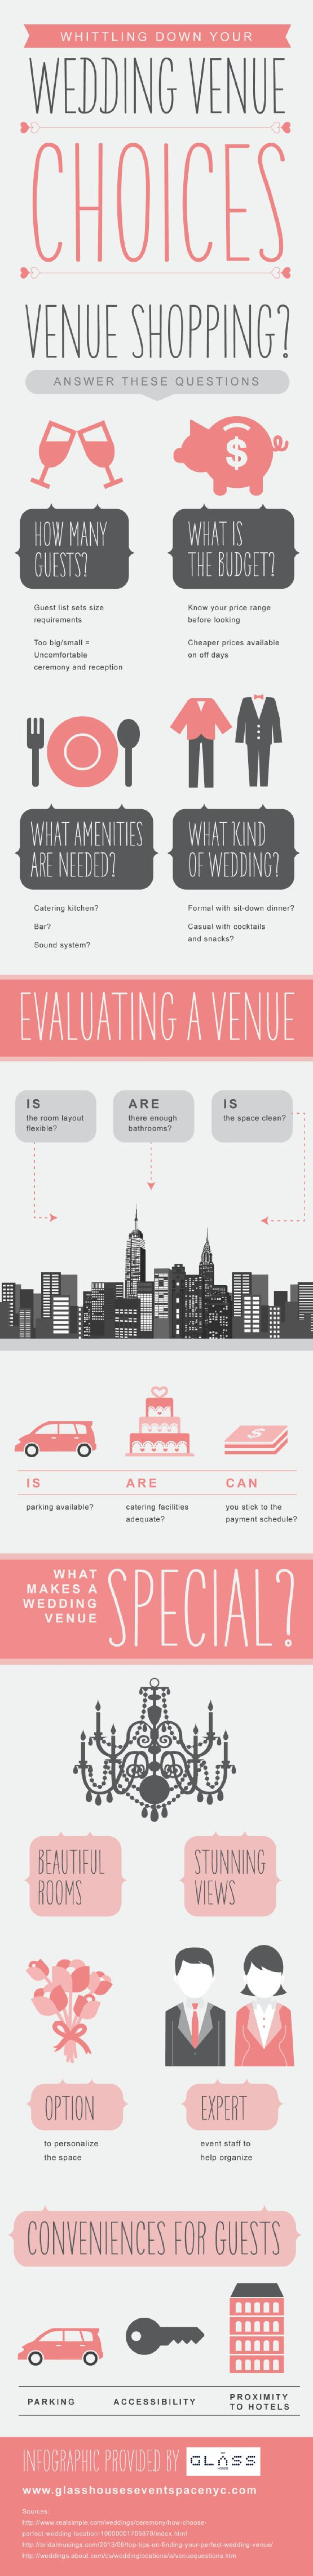 When choosing a wedding venue, it is a good idea to ask about catering options. The right venue will make it easy to serve a tasty meal to your wedding guests. Find more planning suggestions by checking out this infographic from a wedding venue in NYC.